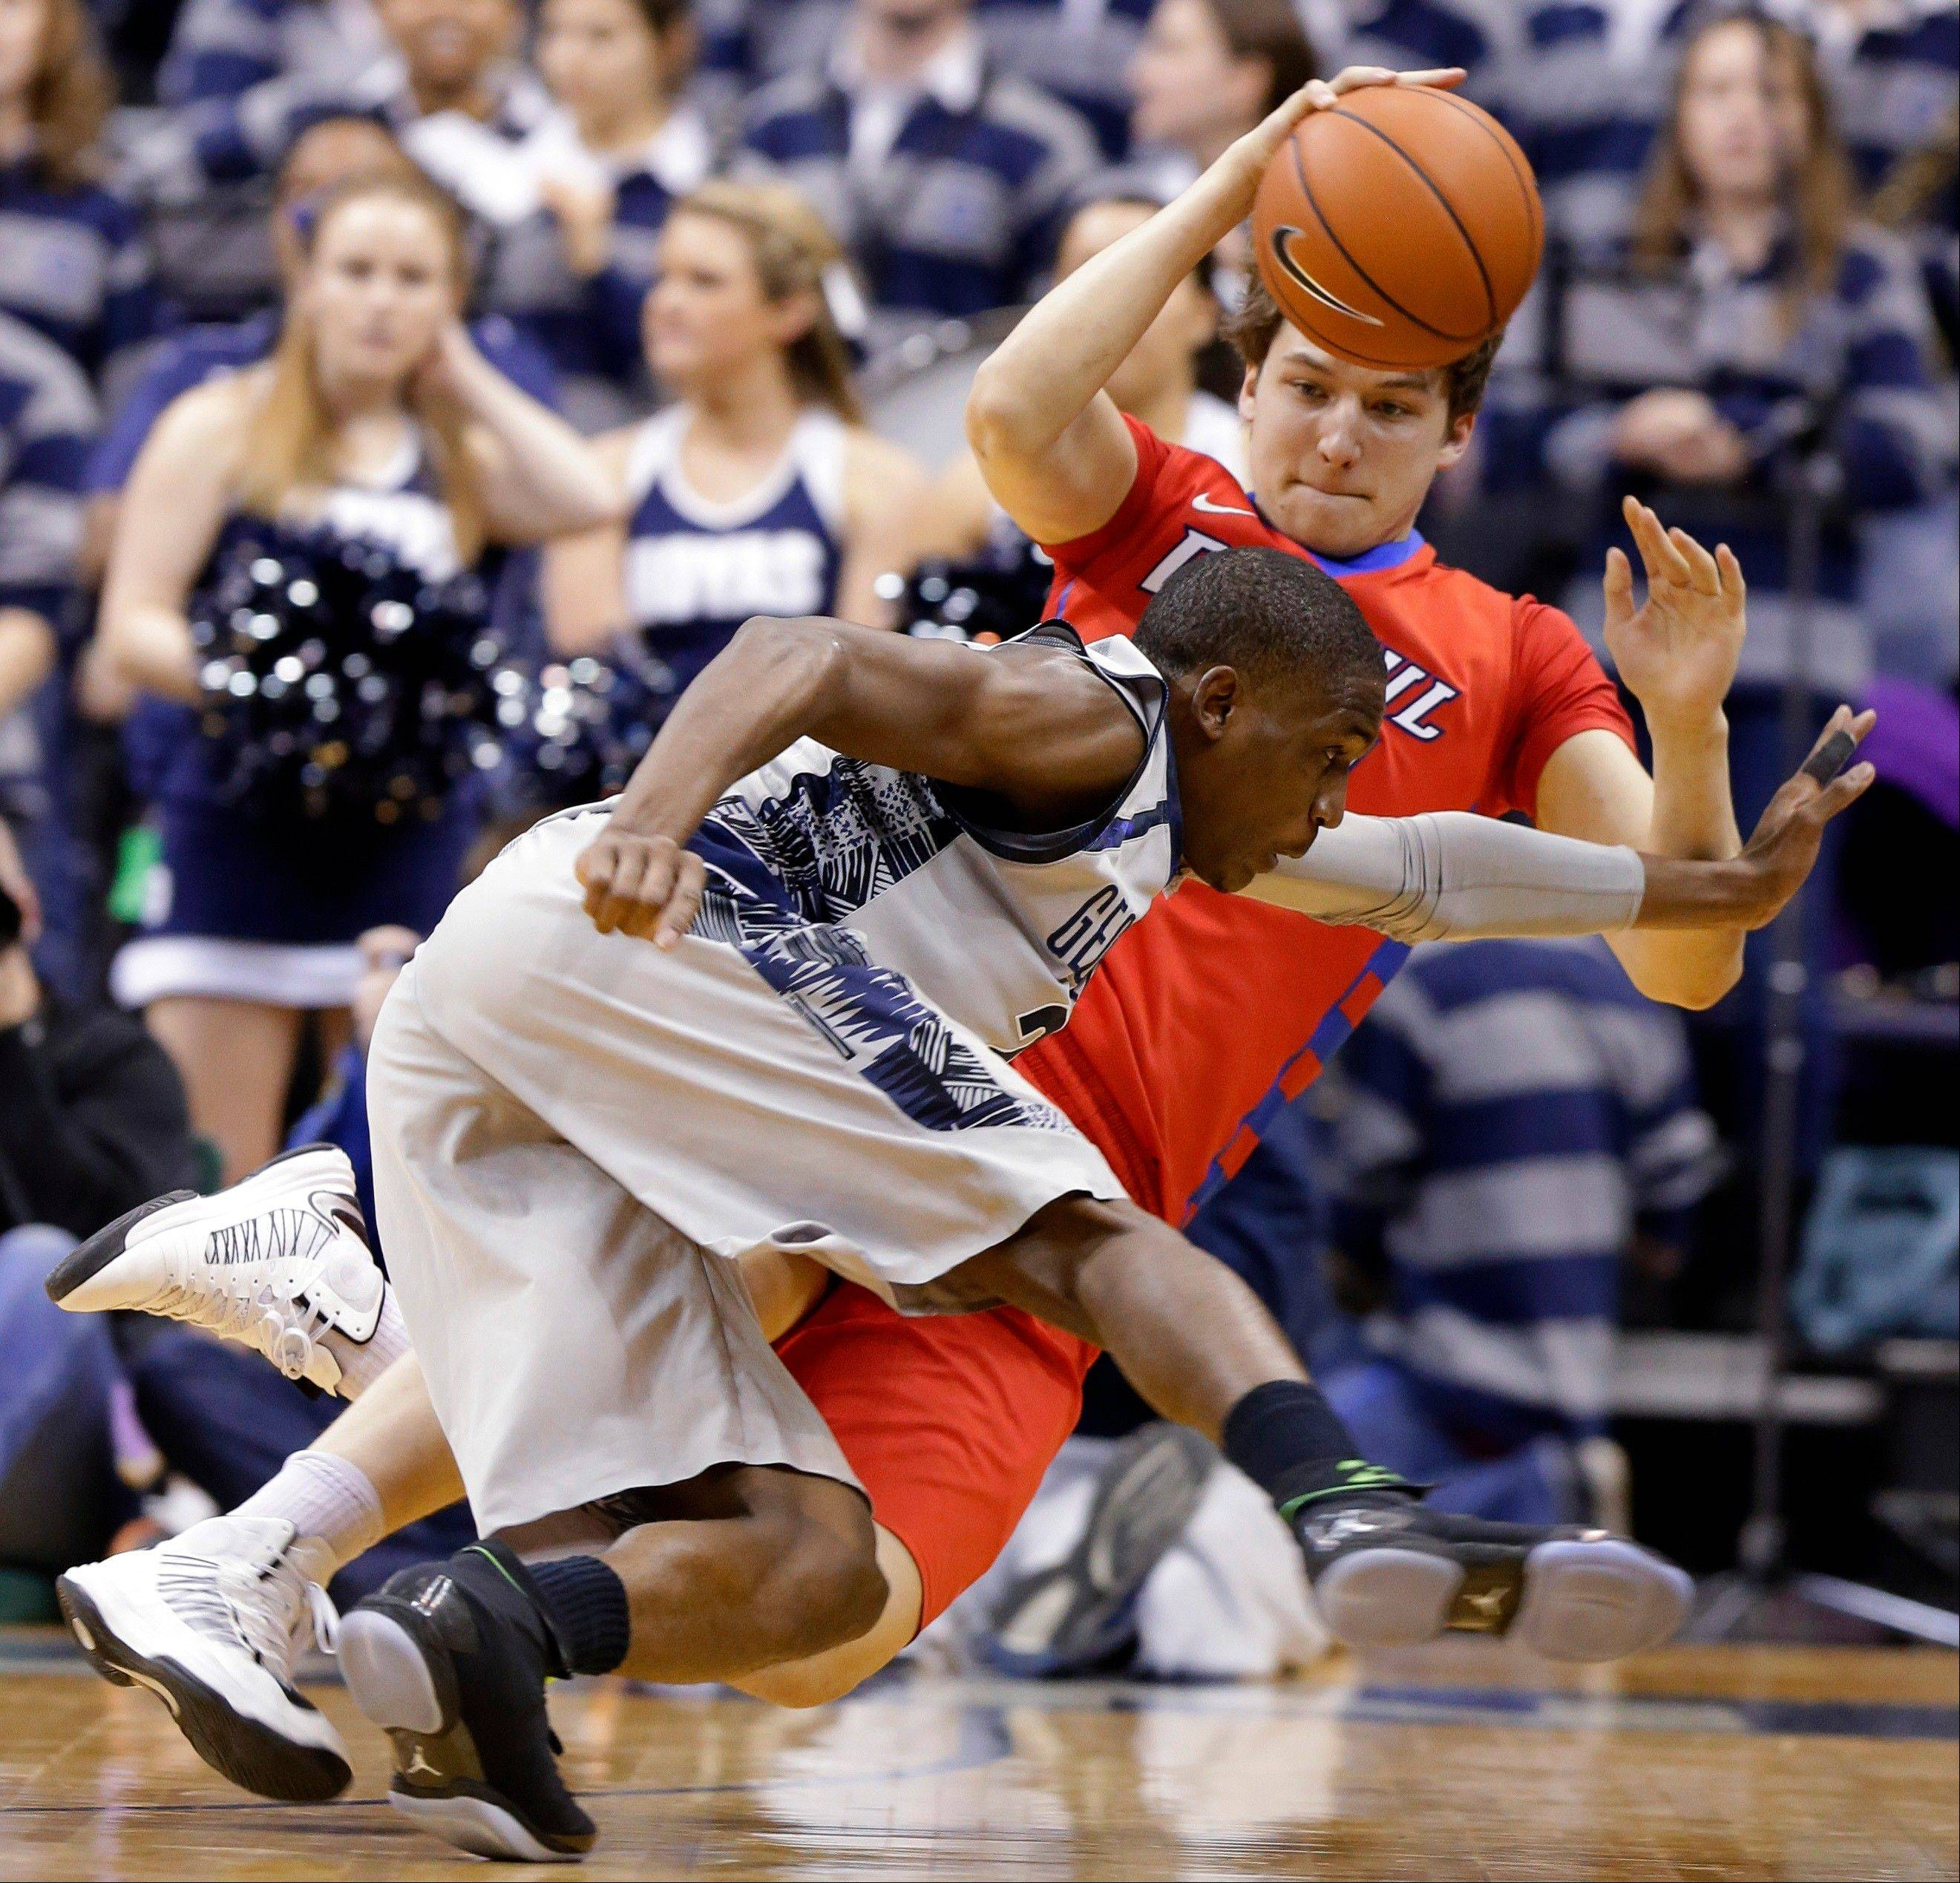 Georgetown forward Aaron Bowen, front, and DePaul forward Peter Ryckbosch scramble for a loose ball during the second half of an NCAA college basketball game, Wednesday, Feb. 20, 2013, in Washington. Georgetown won 90-66.